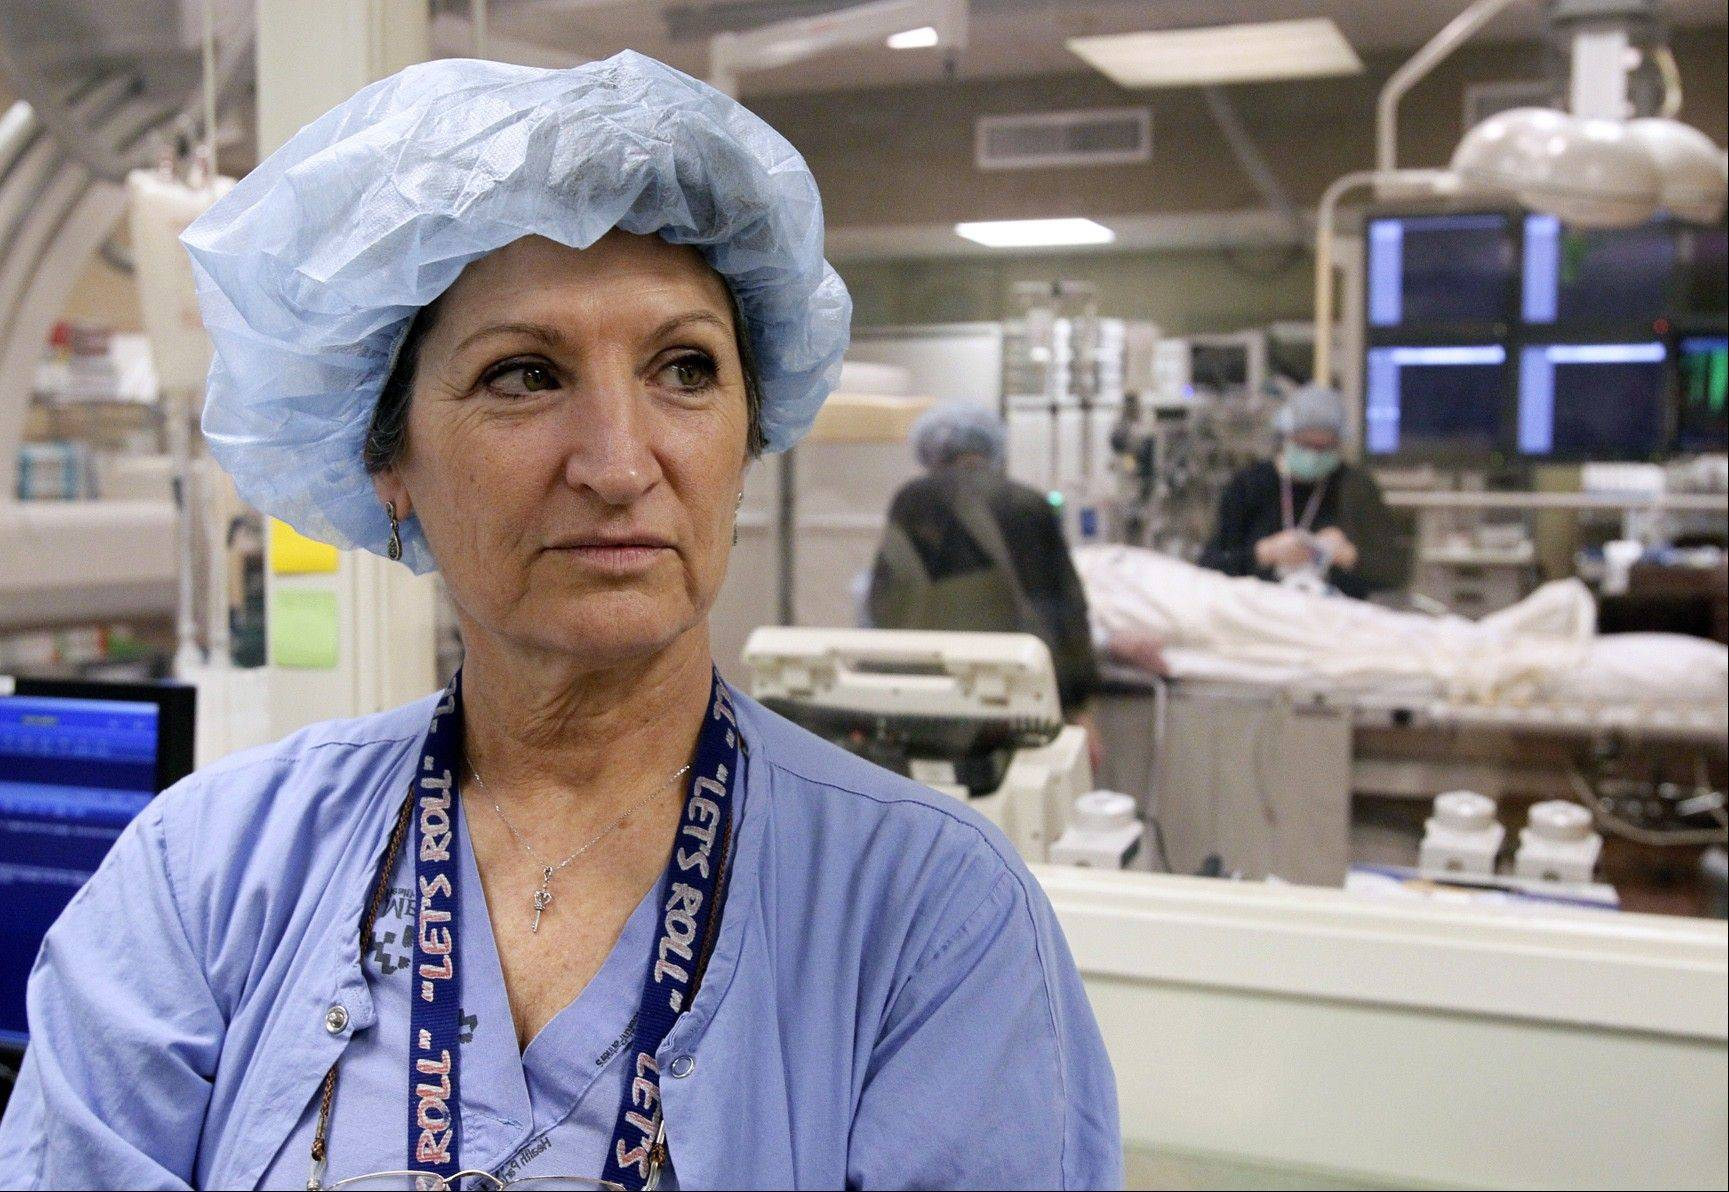 Olivia Cox, a registered nurse at Mercy St. Vincent hospital, returns to her job following a procedure for a cerebral aneurysm. She recently had aneurysm coiling, a minimally invasive endovascular procedure performed to treat the aneurysm.